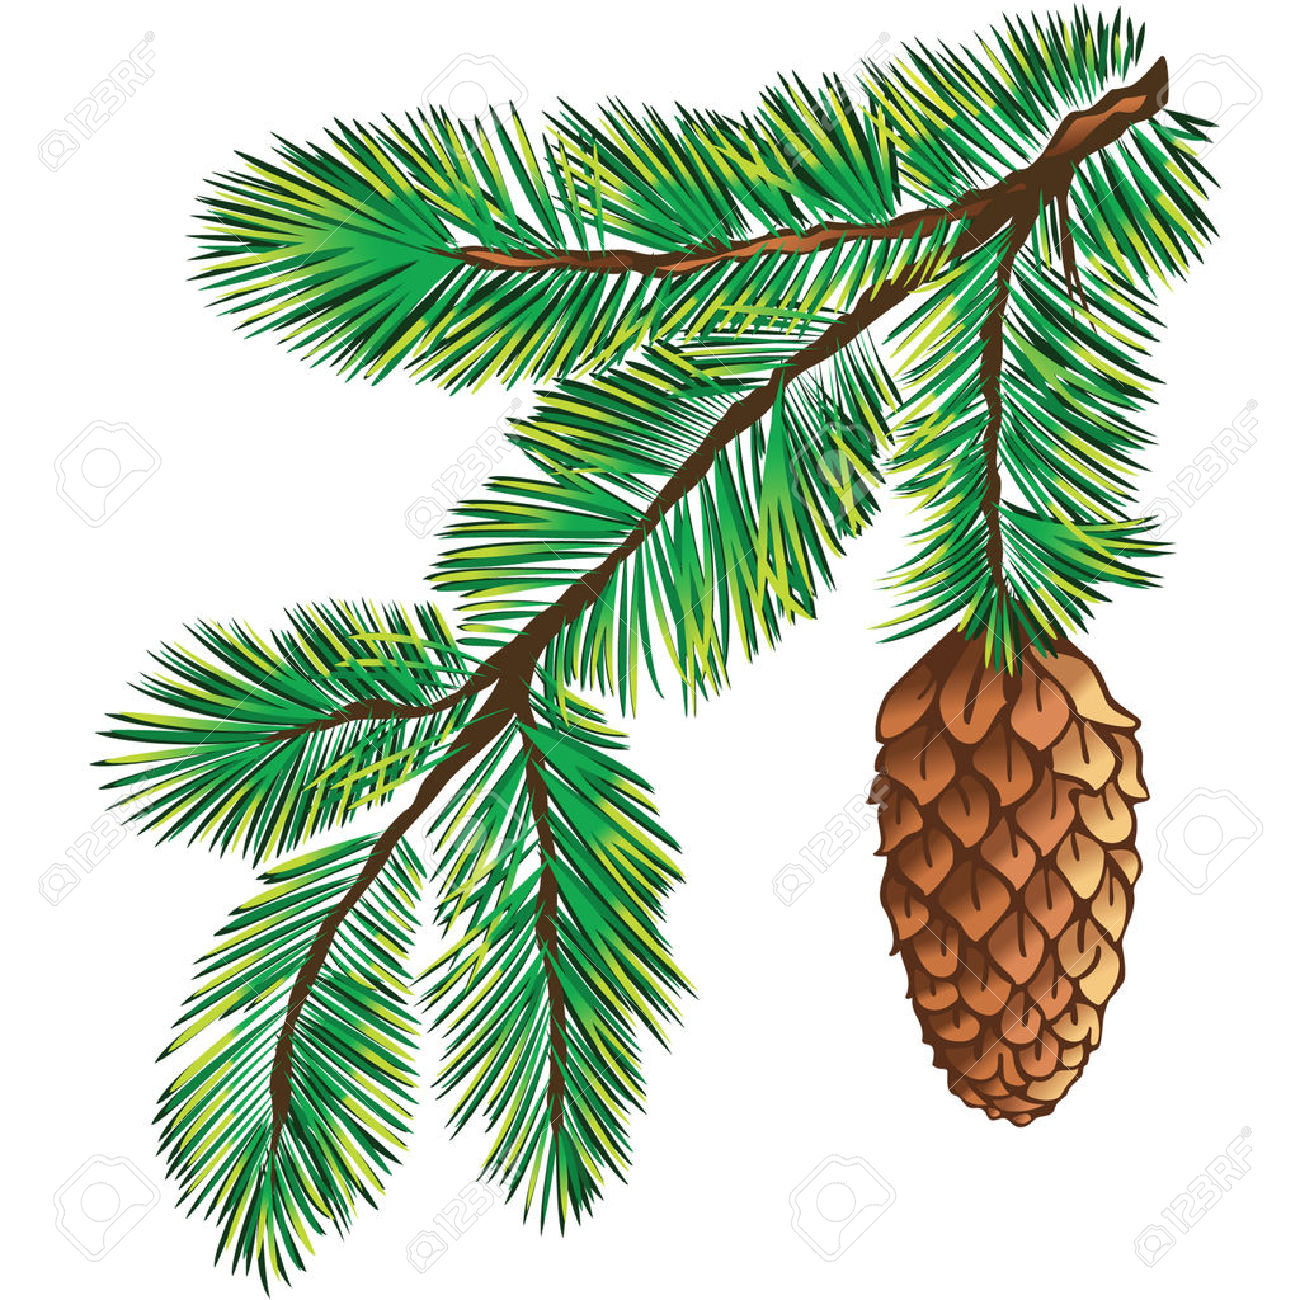 hight resolution of 1300x1300 pine branch clipart